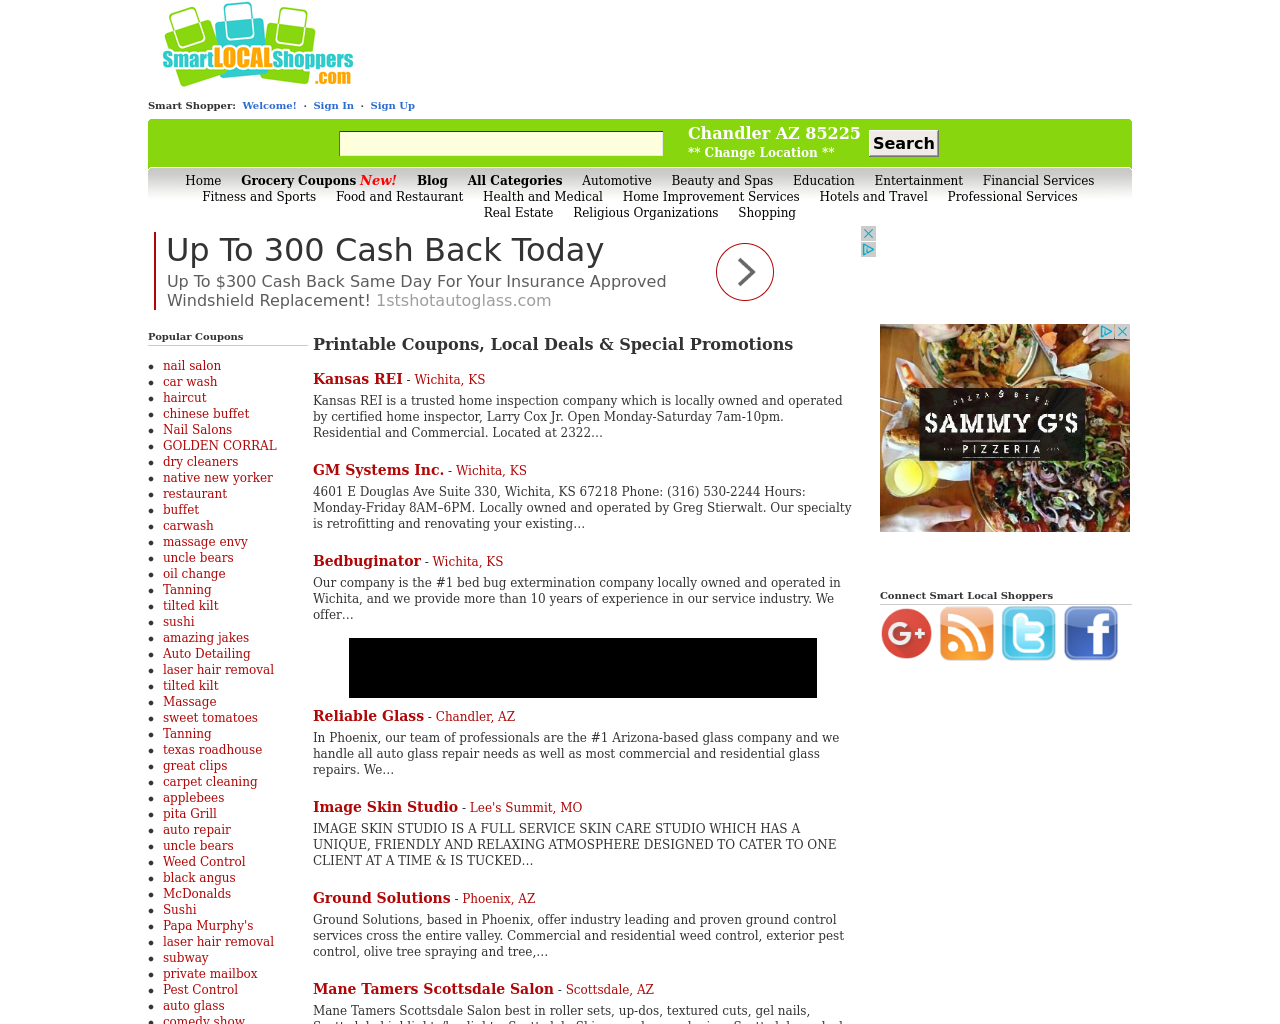 Smart-Local-Shoppers-Advertising-Reviews-Pricing